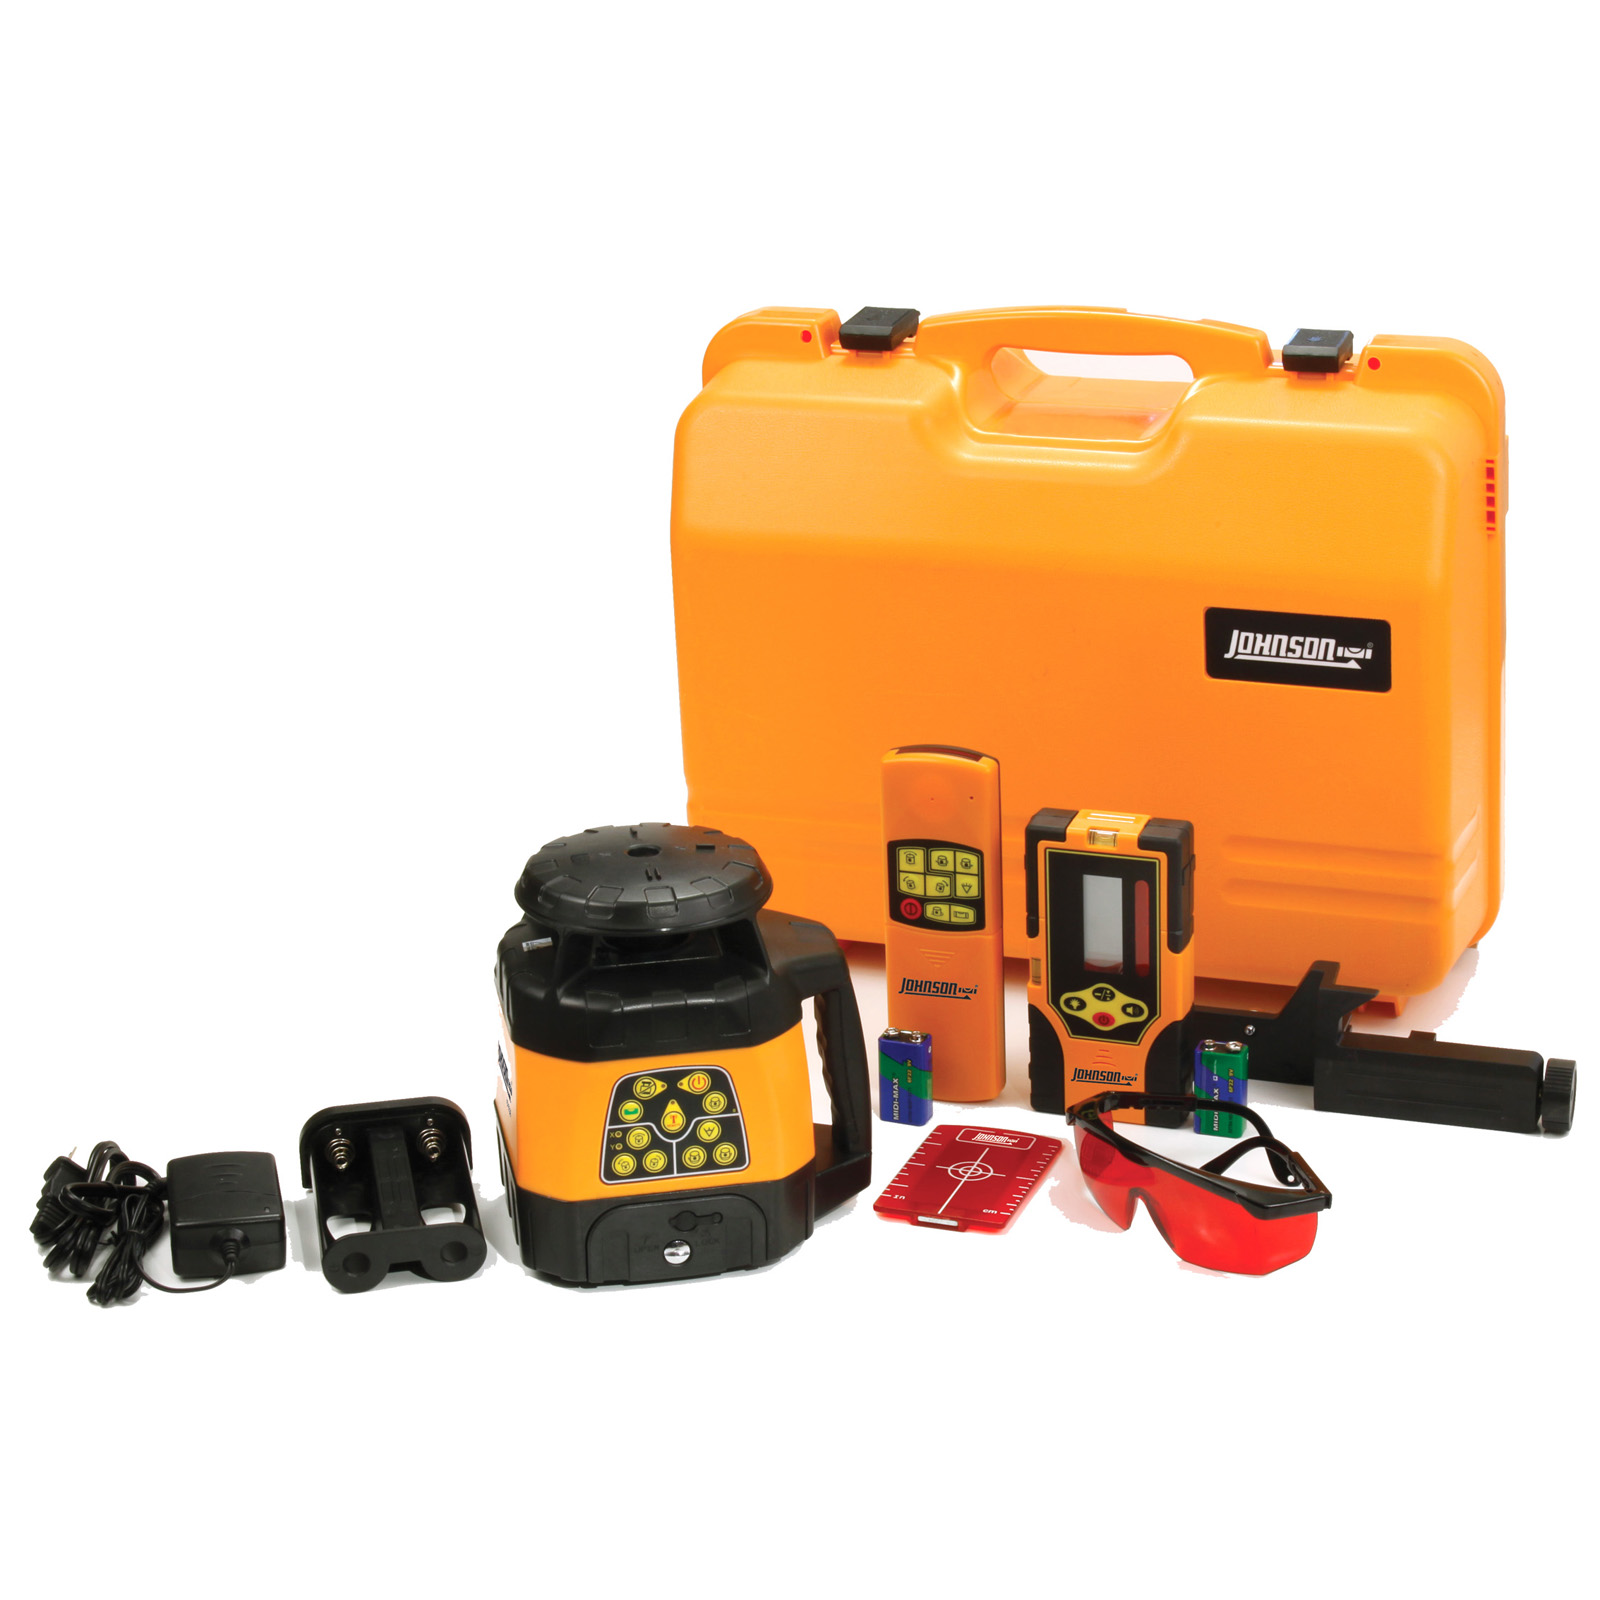 Johnson Level Electronic Self-Leveling Horizontal & Vertical Rotary Laser Kit